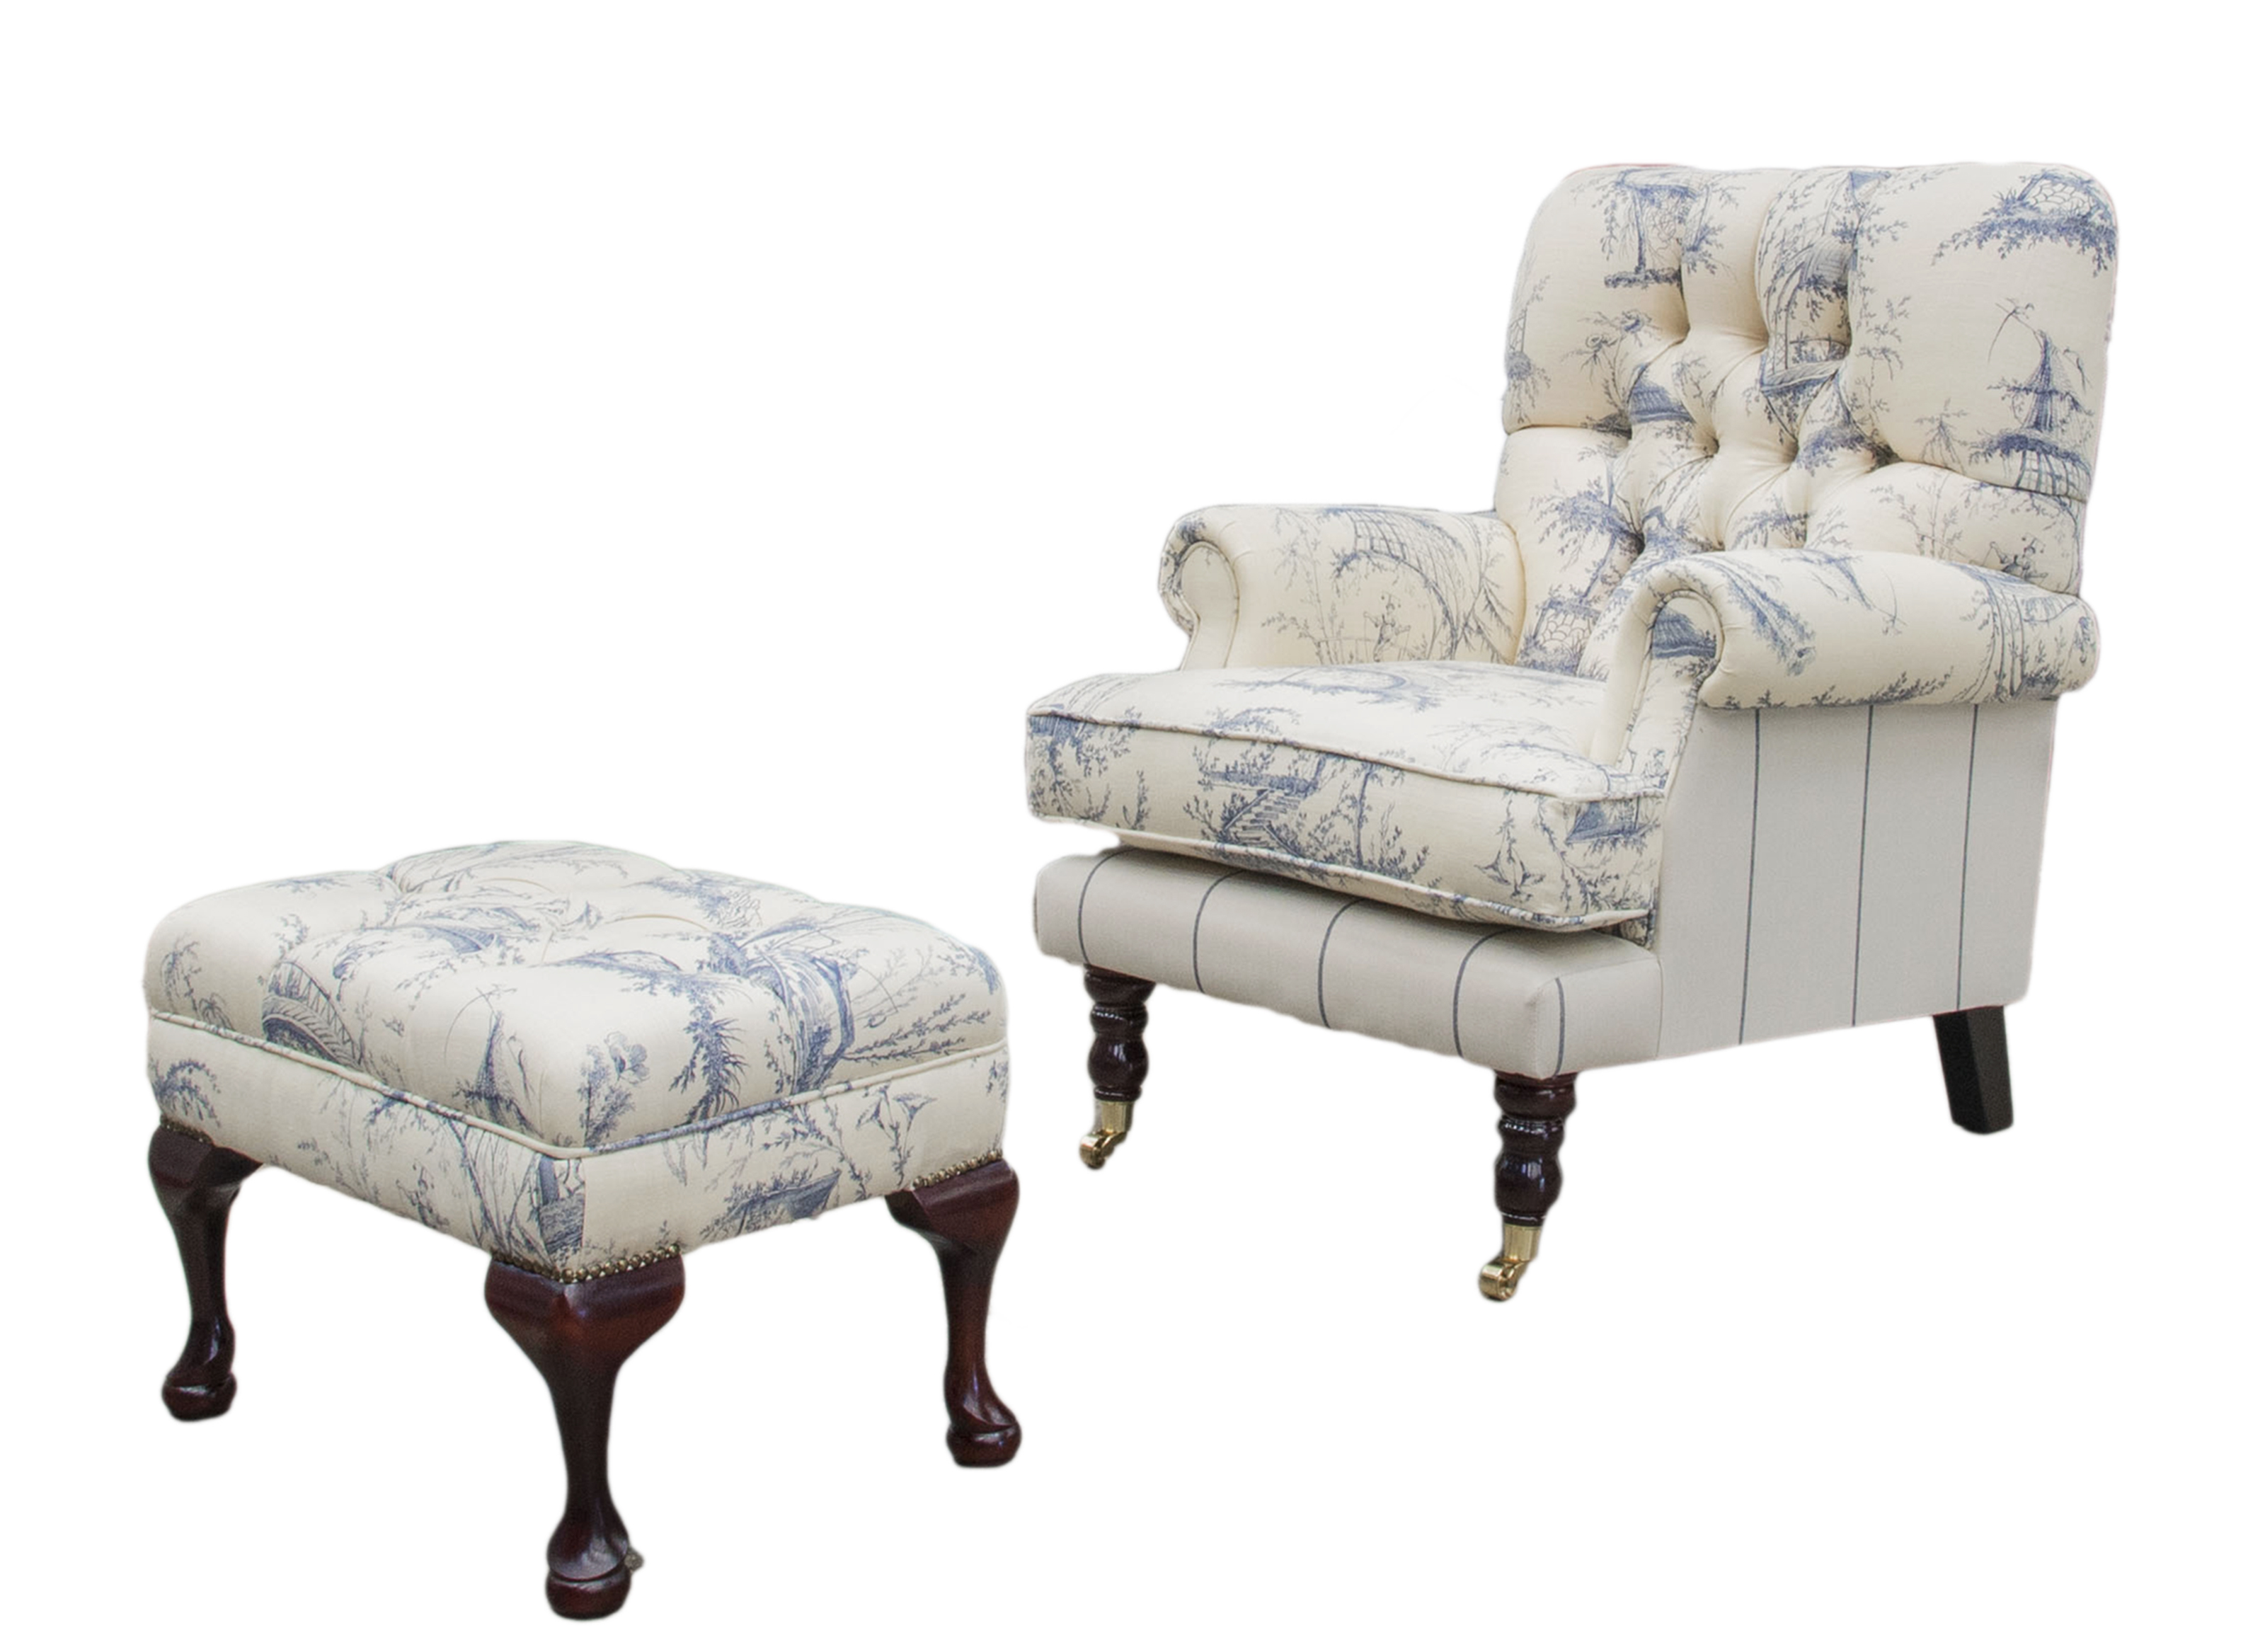 Cleary-Depp-Buttoned-Chair-COM-with-Queen-anne-footstool